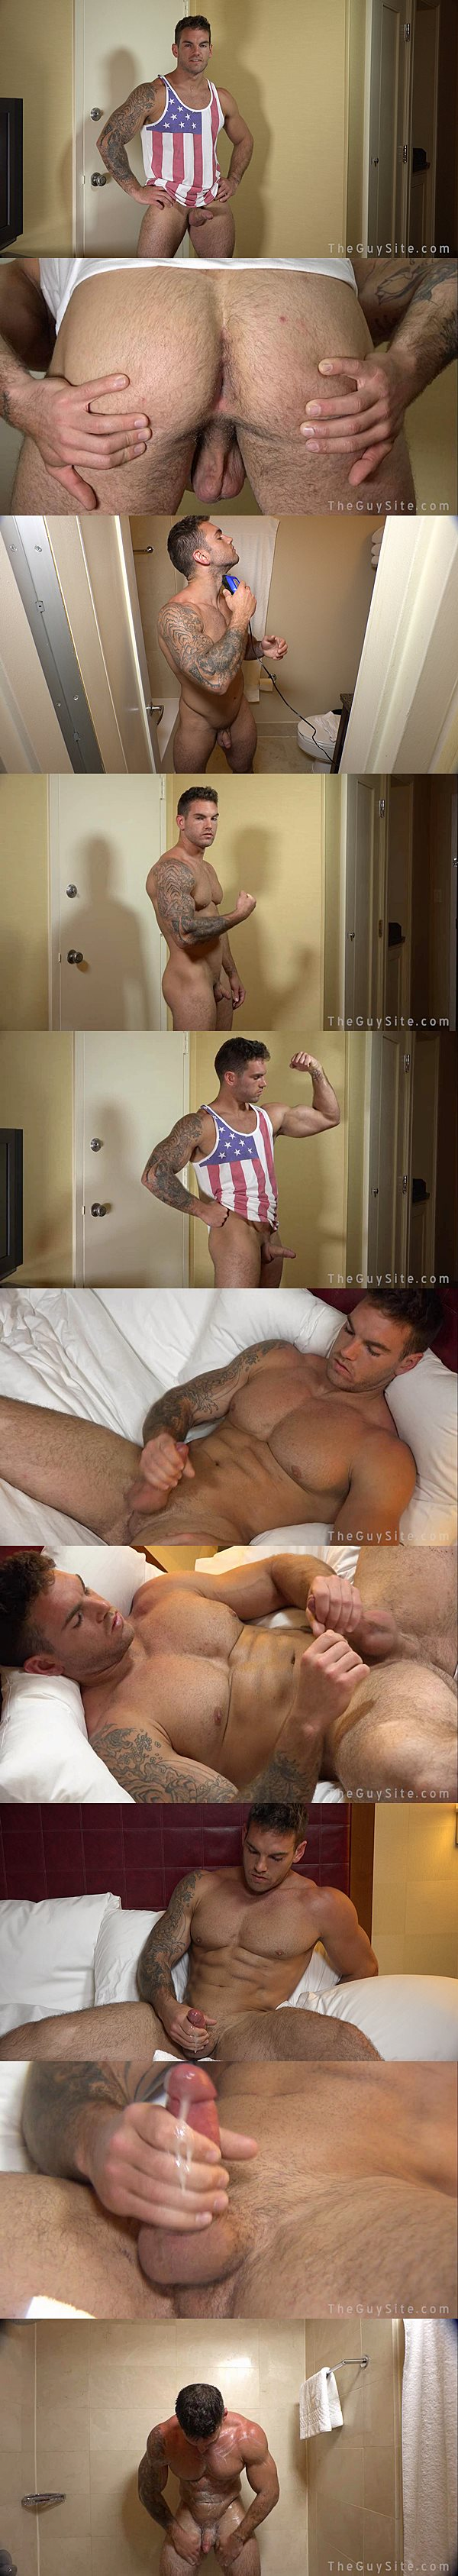 Rugged handsome Chace Lachance shows off his hot naked body and strokes a big load out of  his stiff pole at Theguysite